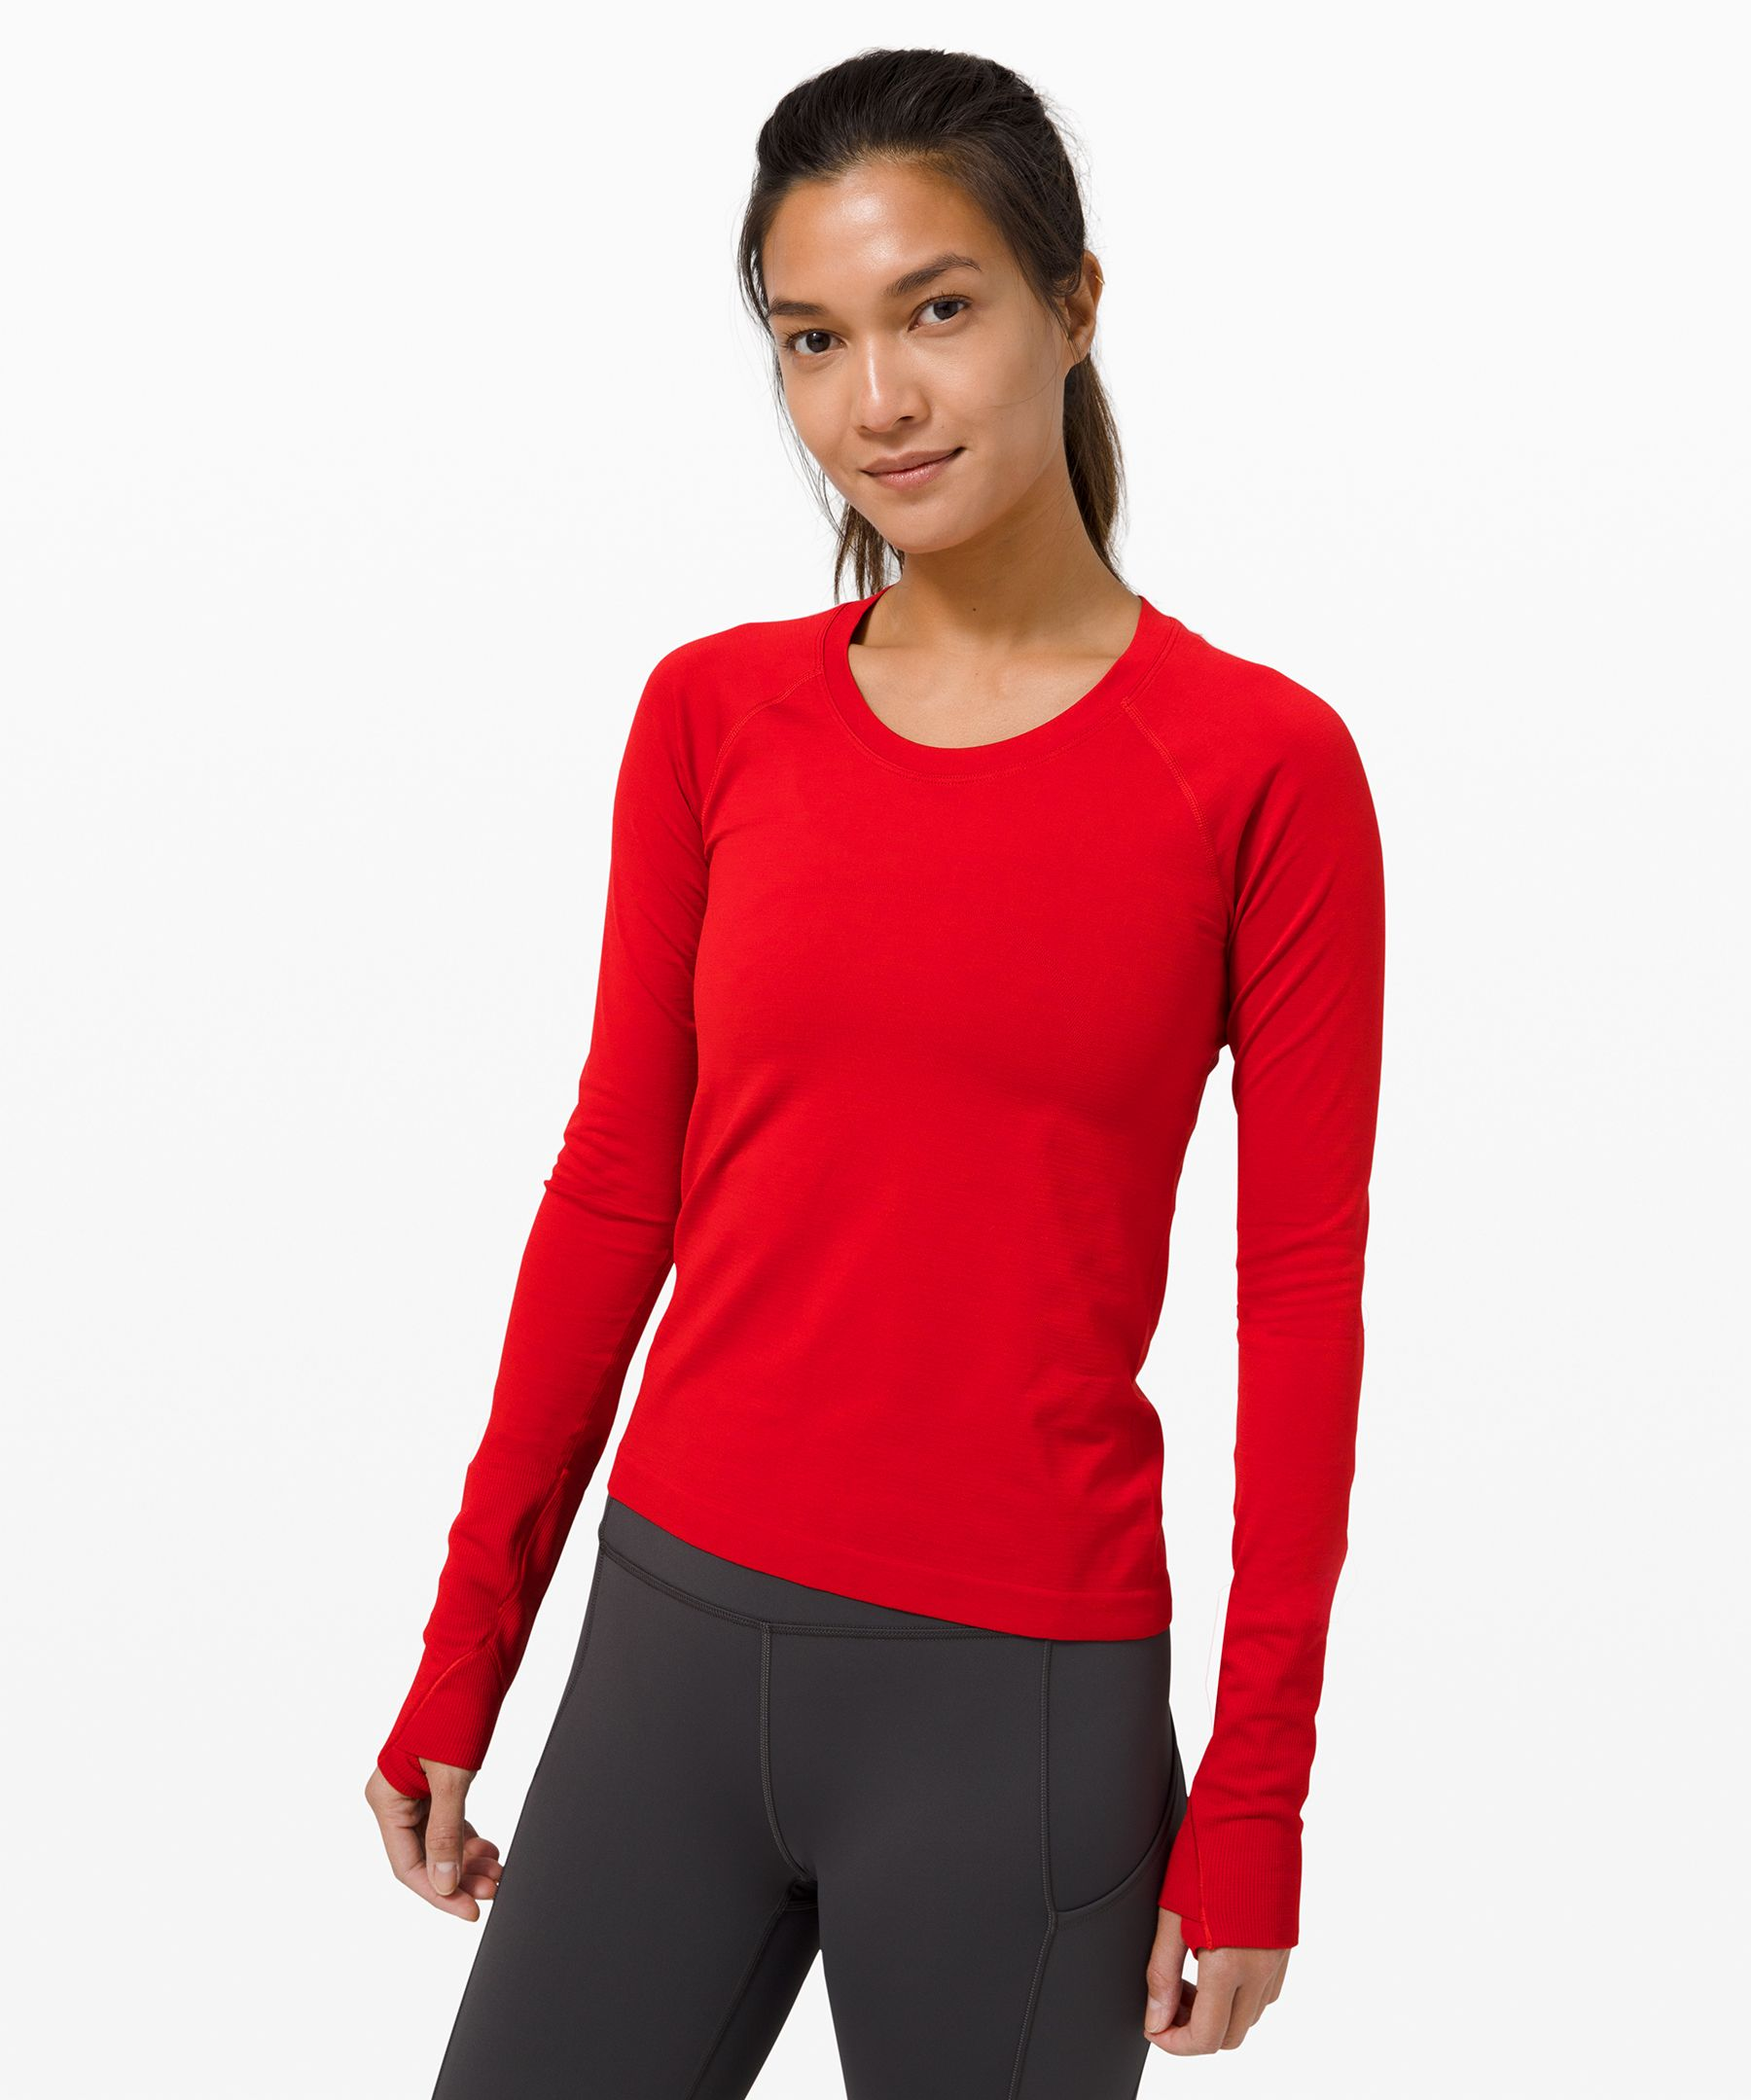 Whether you\\\'re running or  training, this anti-stink long  sleeve gives you the  lightweight coverage you need.  Shortened length won\\\'t ride up  on long runs or race day.